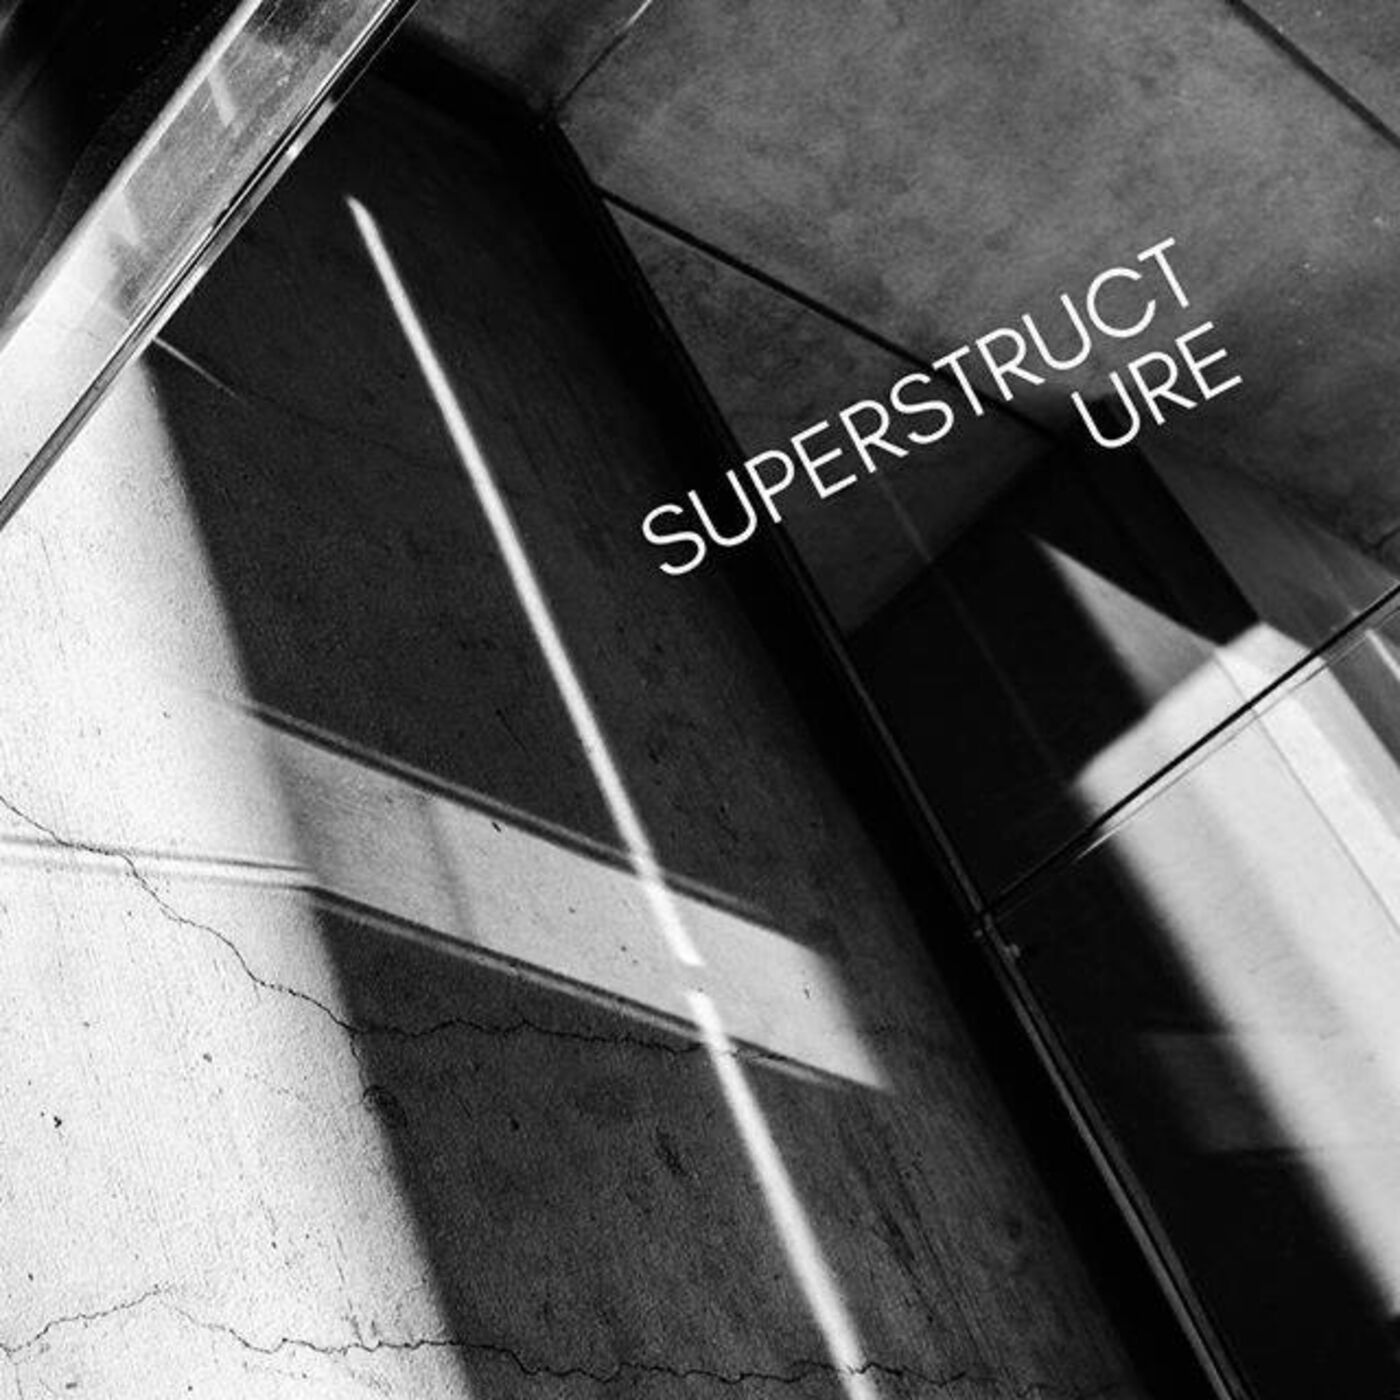 Superstructure: Red Scared (with @moltopopulare)